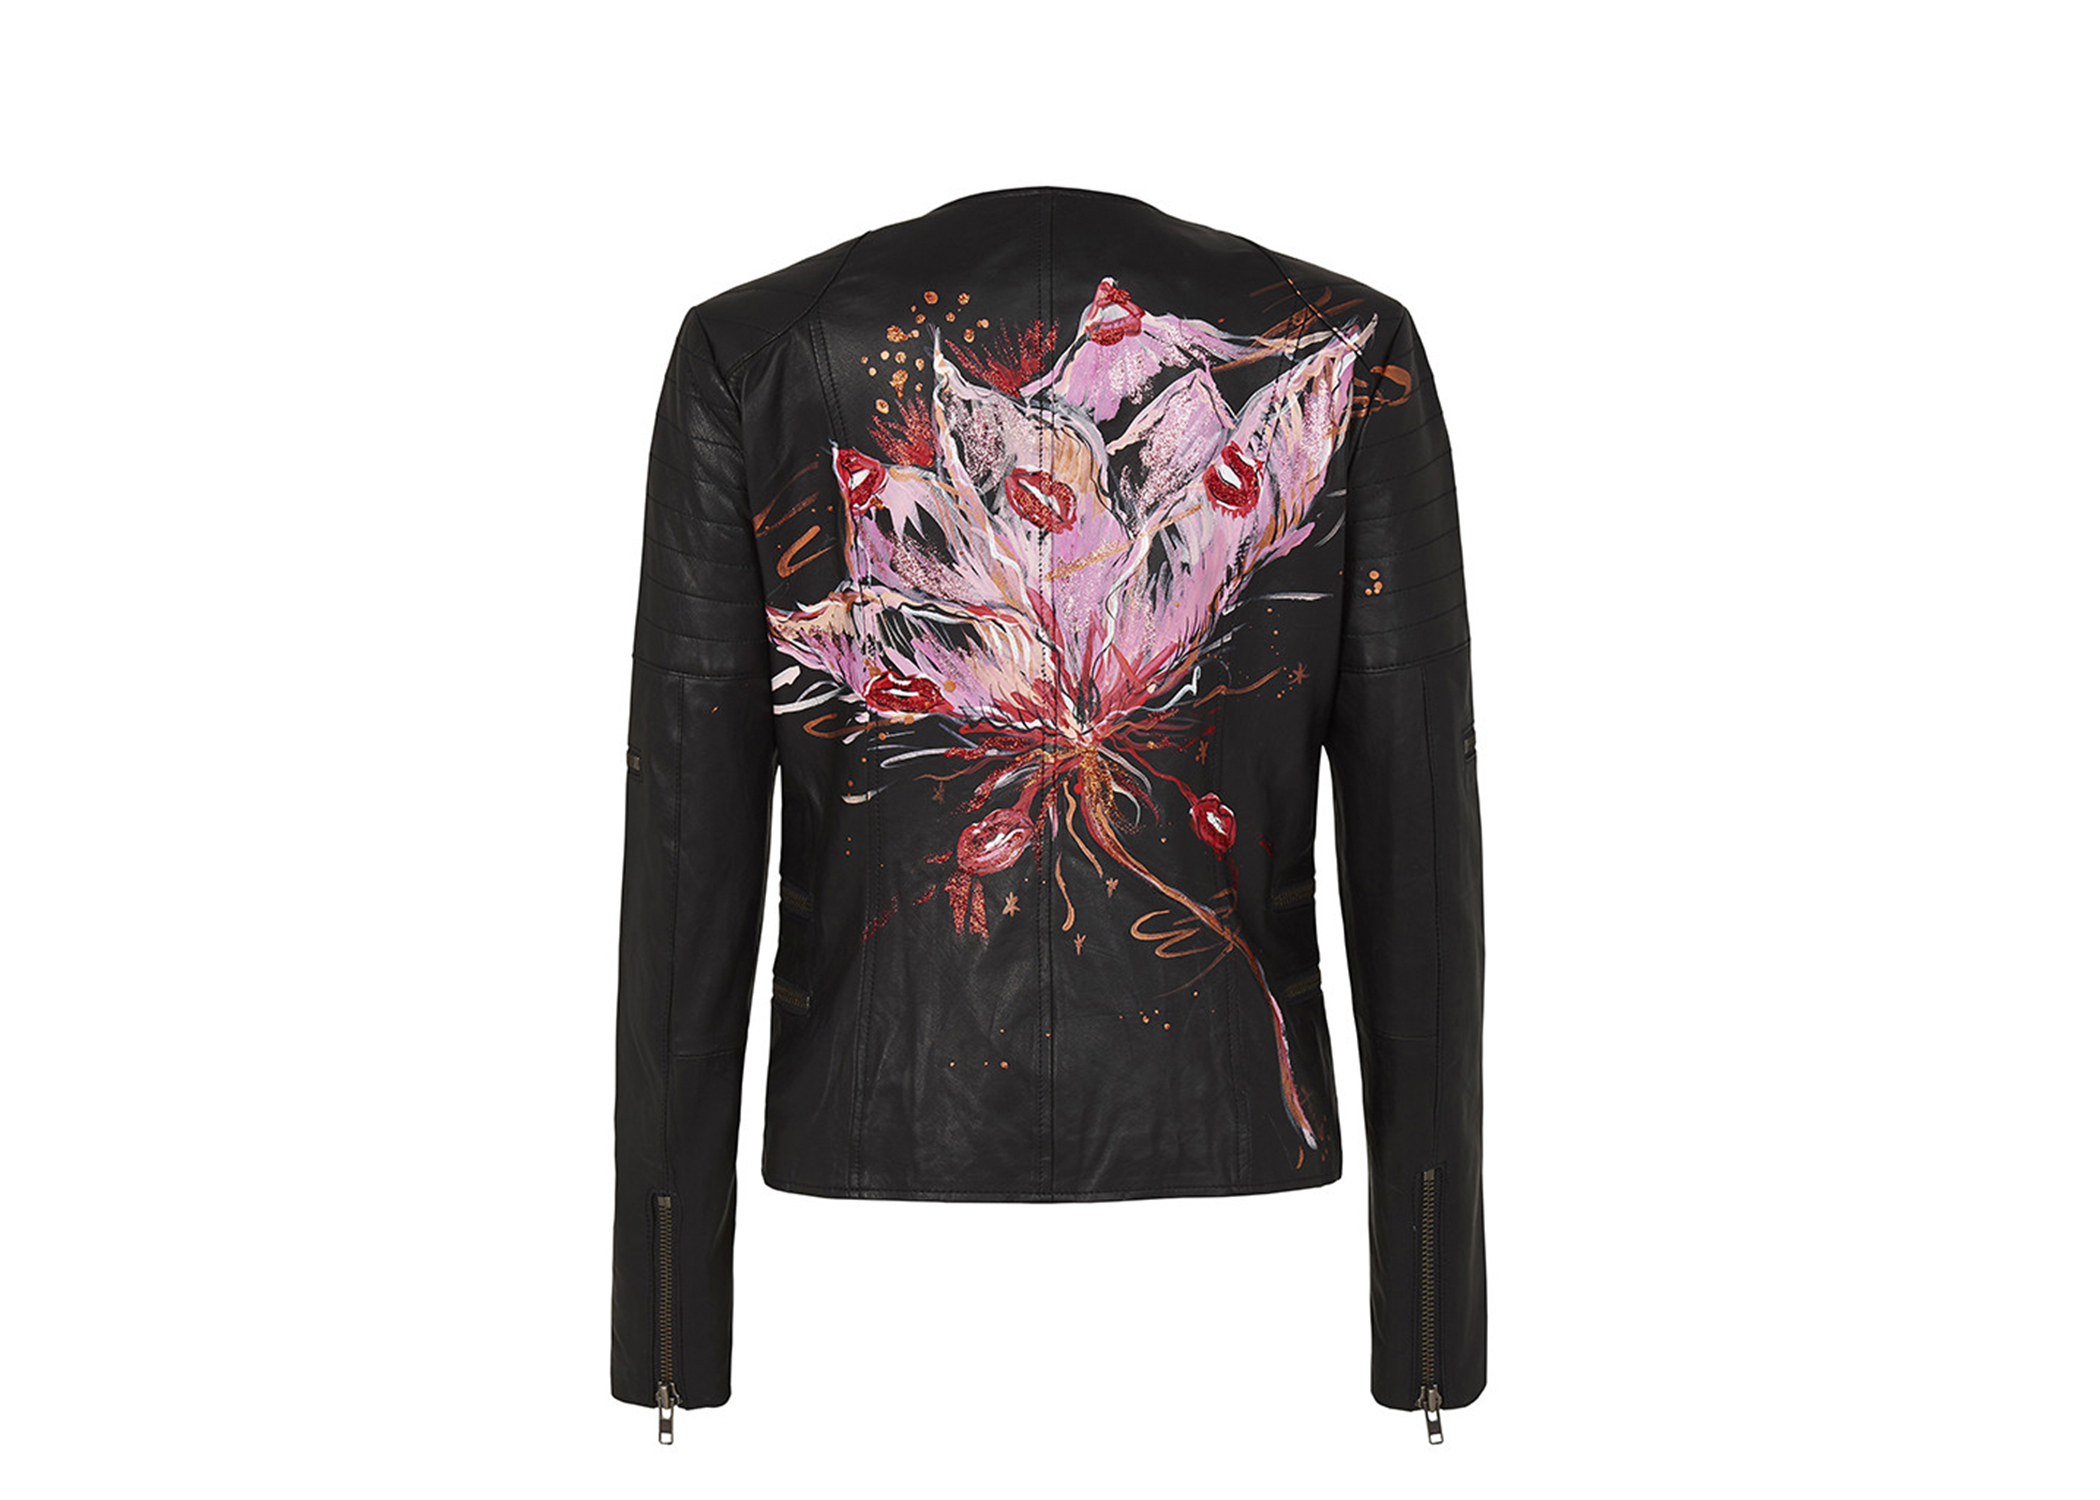 West 14th X Anouk GREENWICH STREET MOTOR JACKET BLACK LEATHER 'PASHIFLORA'